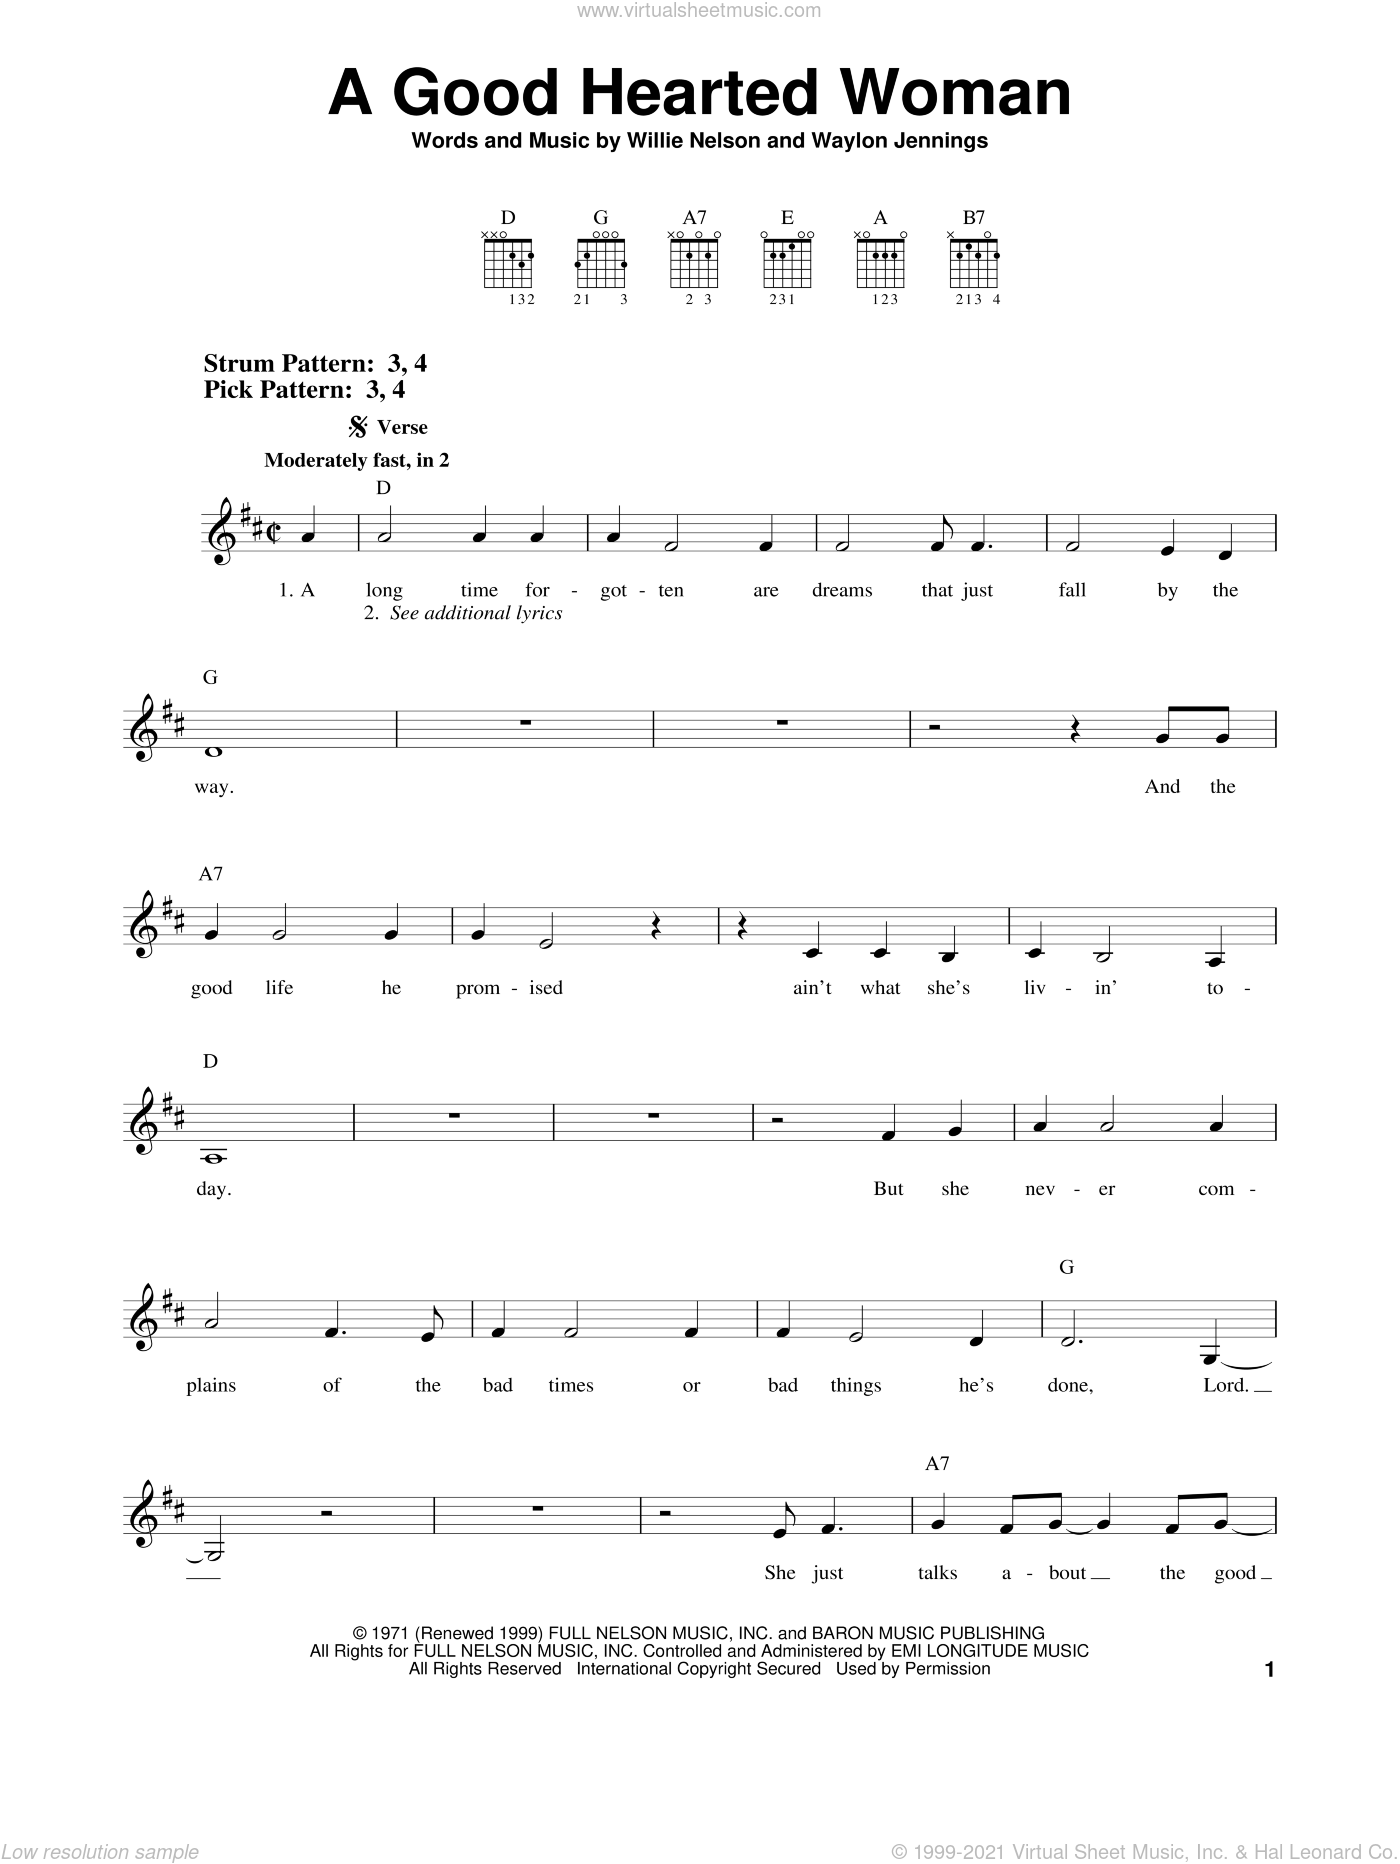 A Good Hearted Woman sheet music for guitar solo (chords) by Willie Nelson and Waylon Jennings, easy guitar (chords). Score Image Preview.